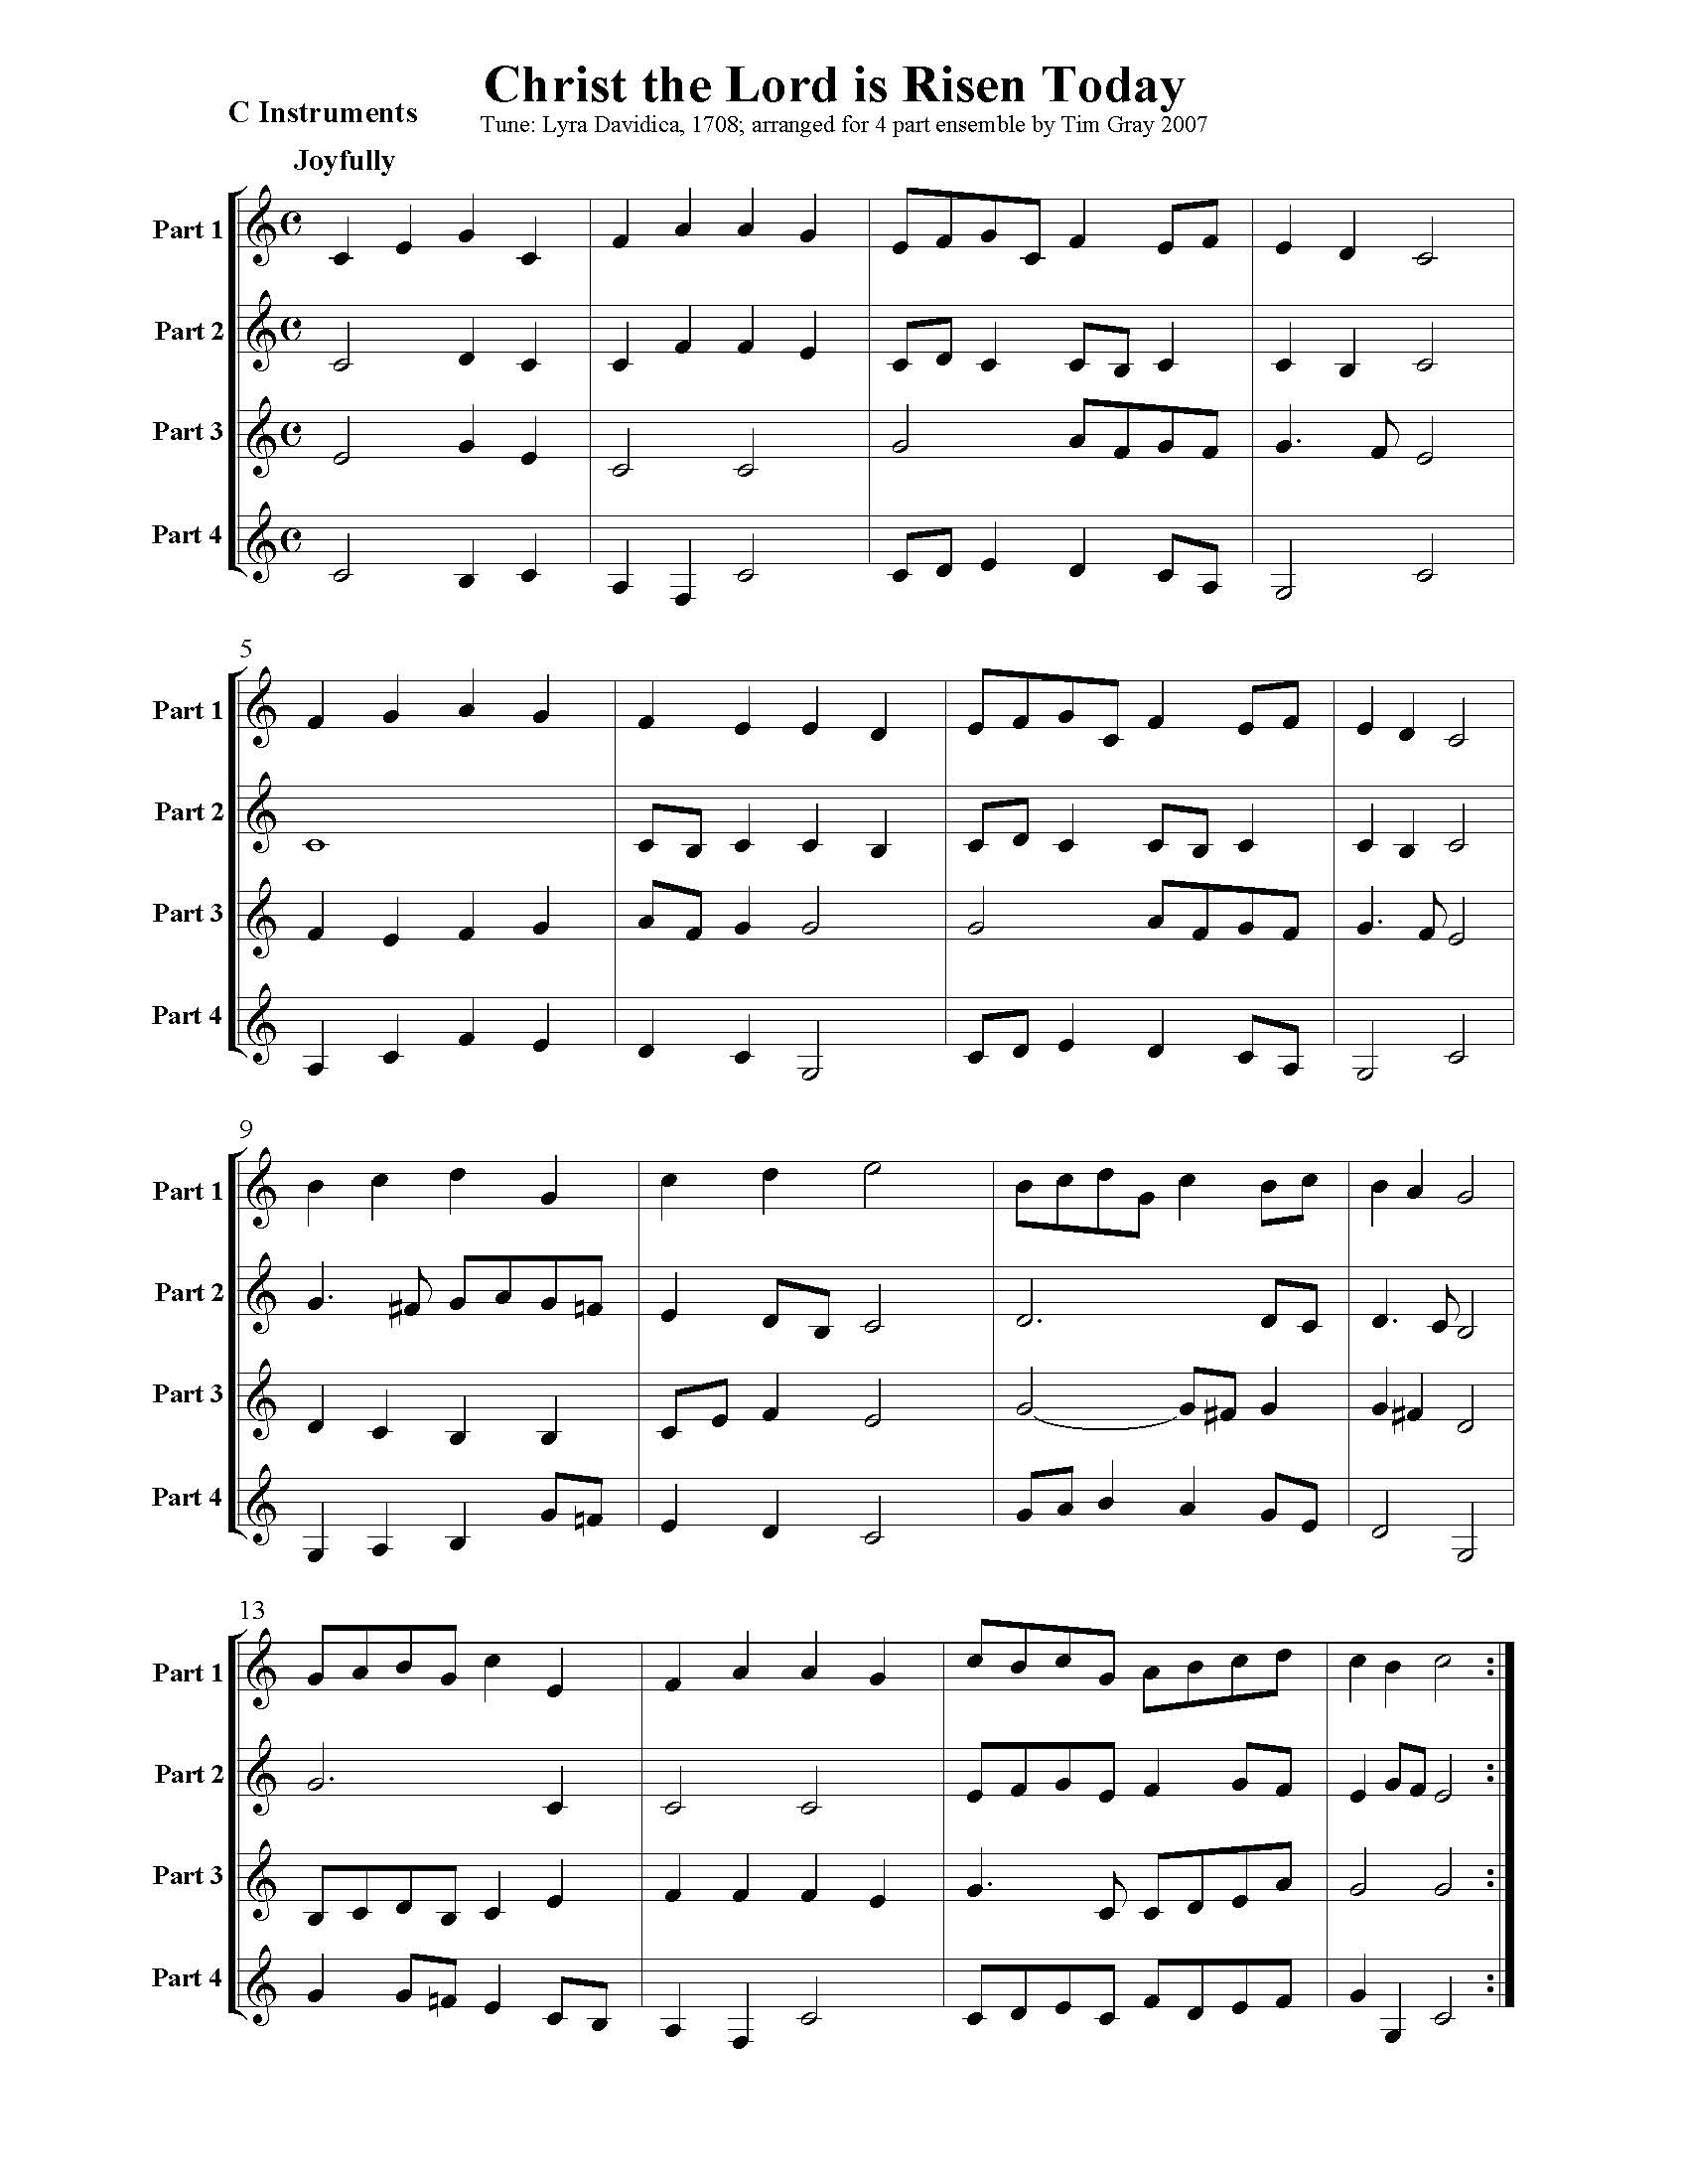 Christ the Lord is Risen Today - 4 Hymns sample page at HonoringGodMusic.com